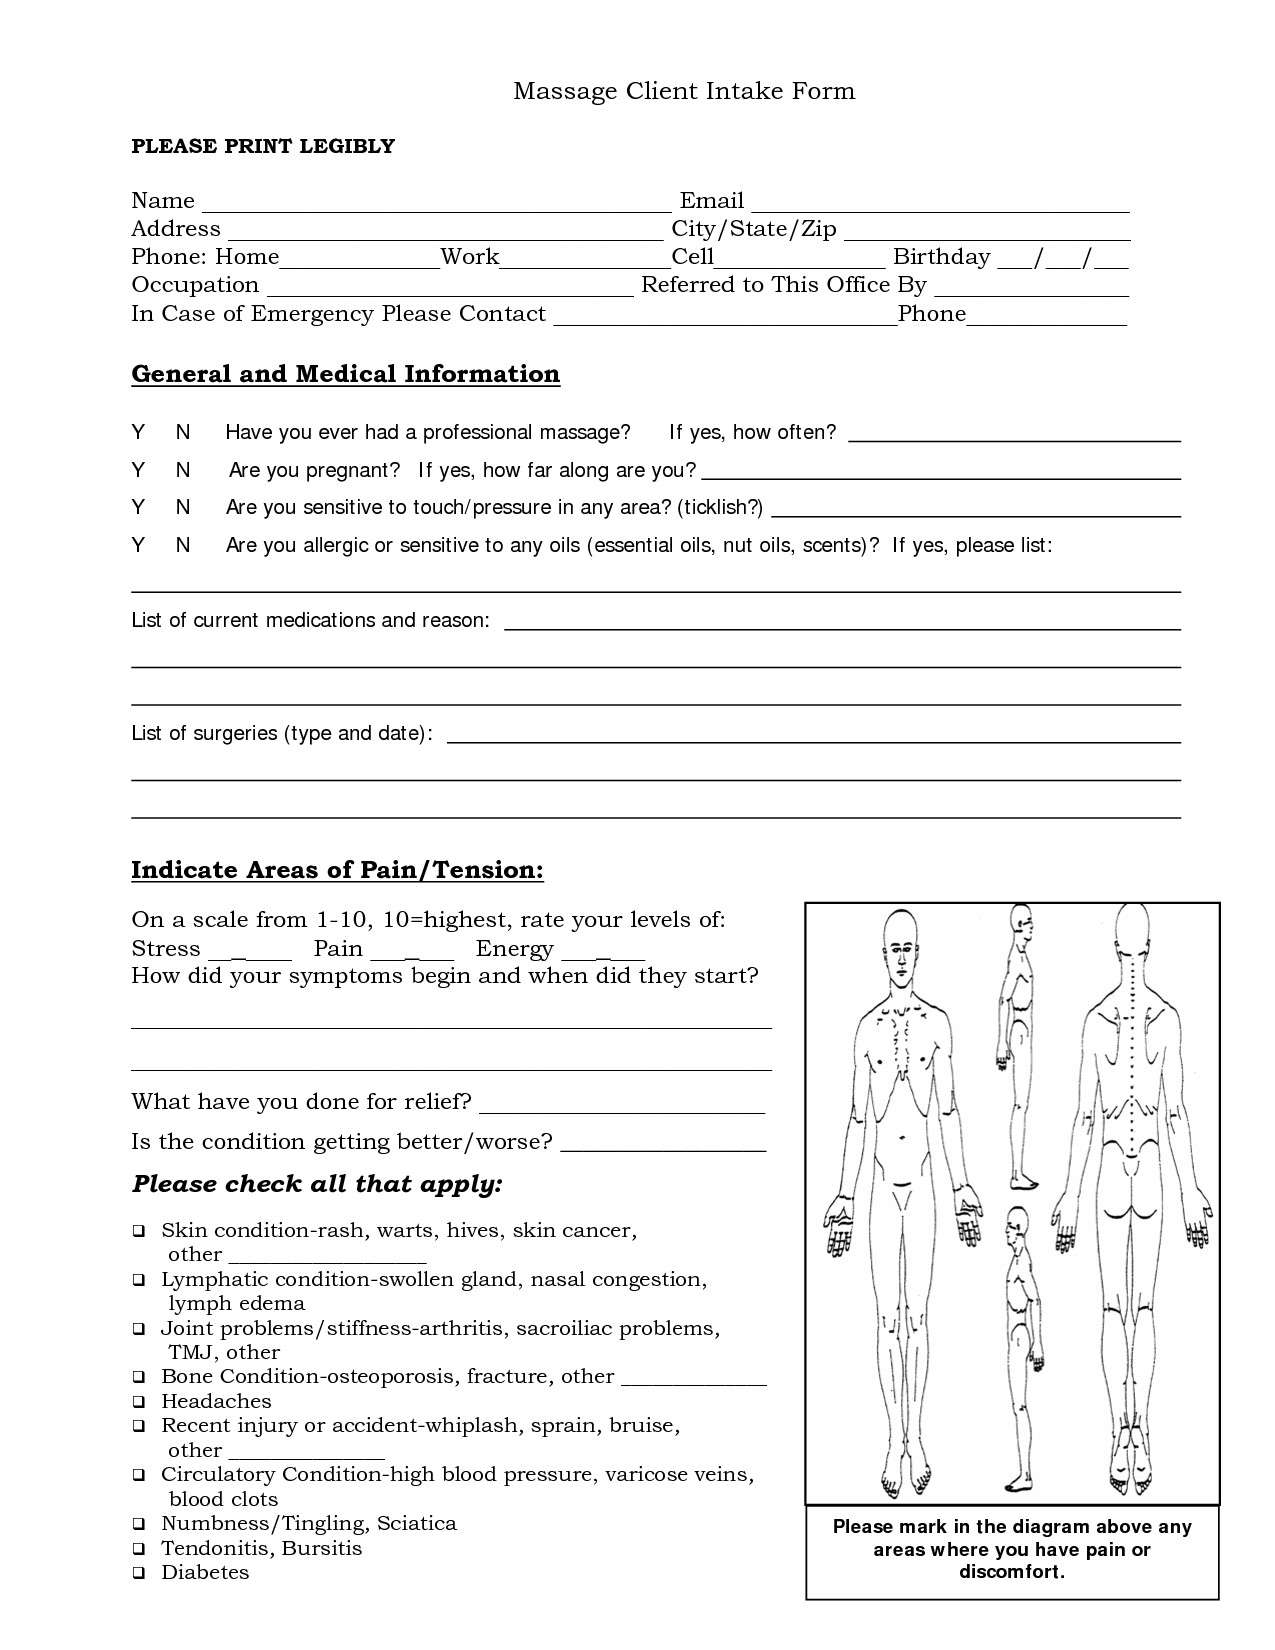 Client Intake form Template Free Massage Intake forms